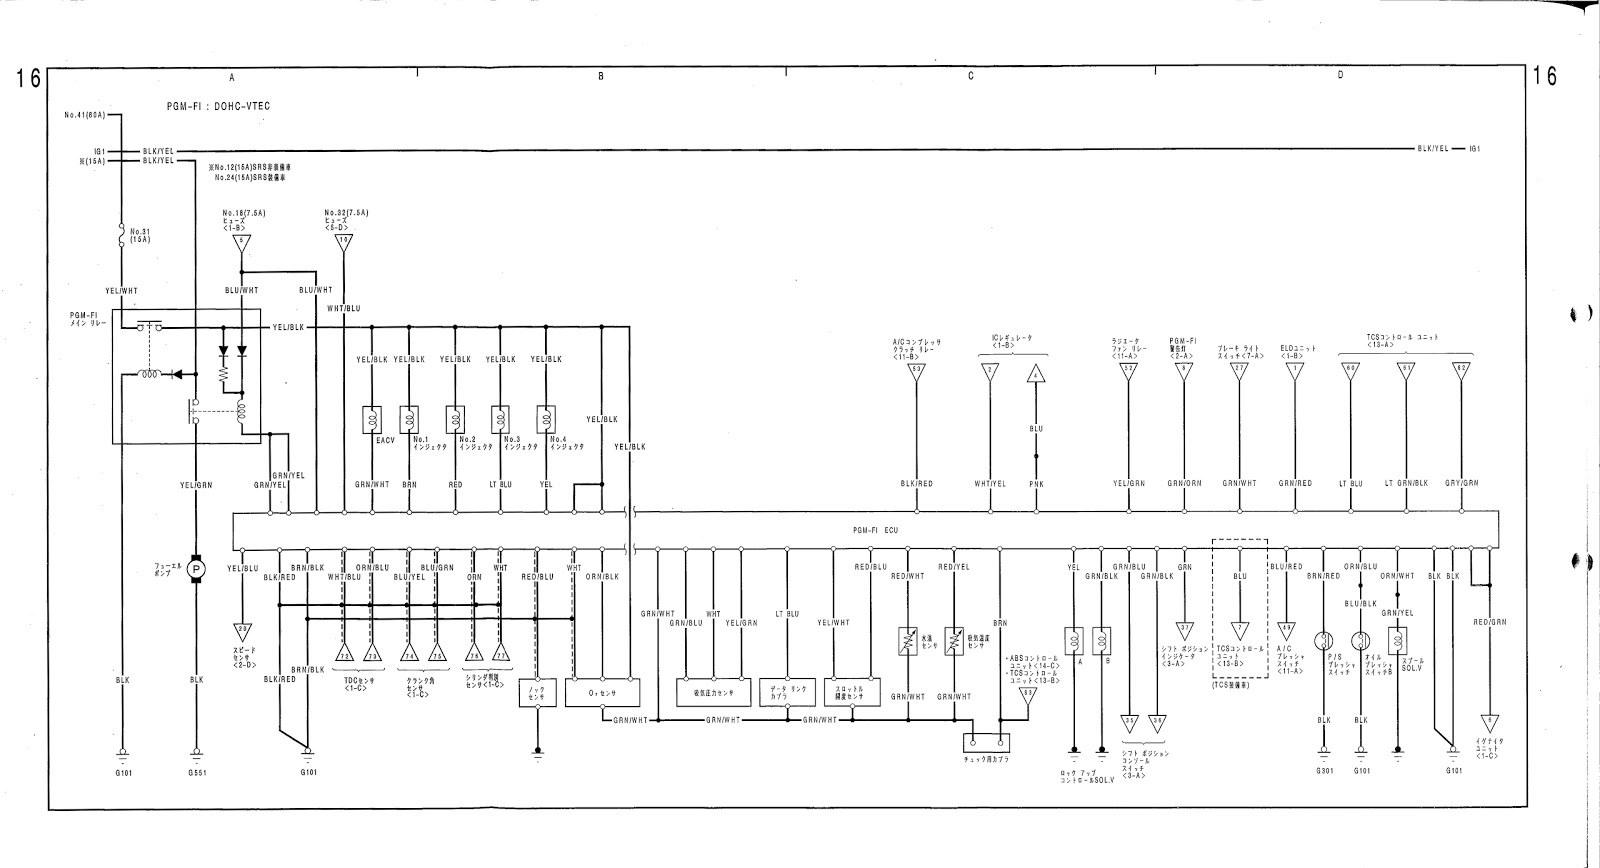 JDM ABS Wiring Diagram. FIGURE 6 LINK TO LARGER VIEW